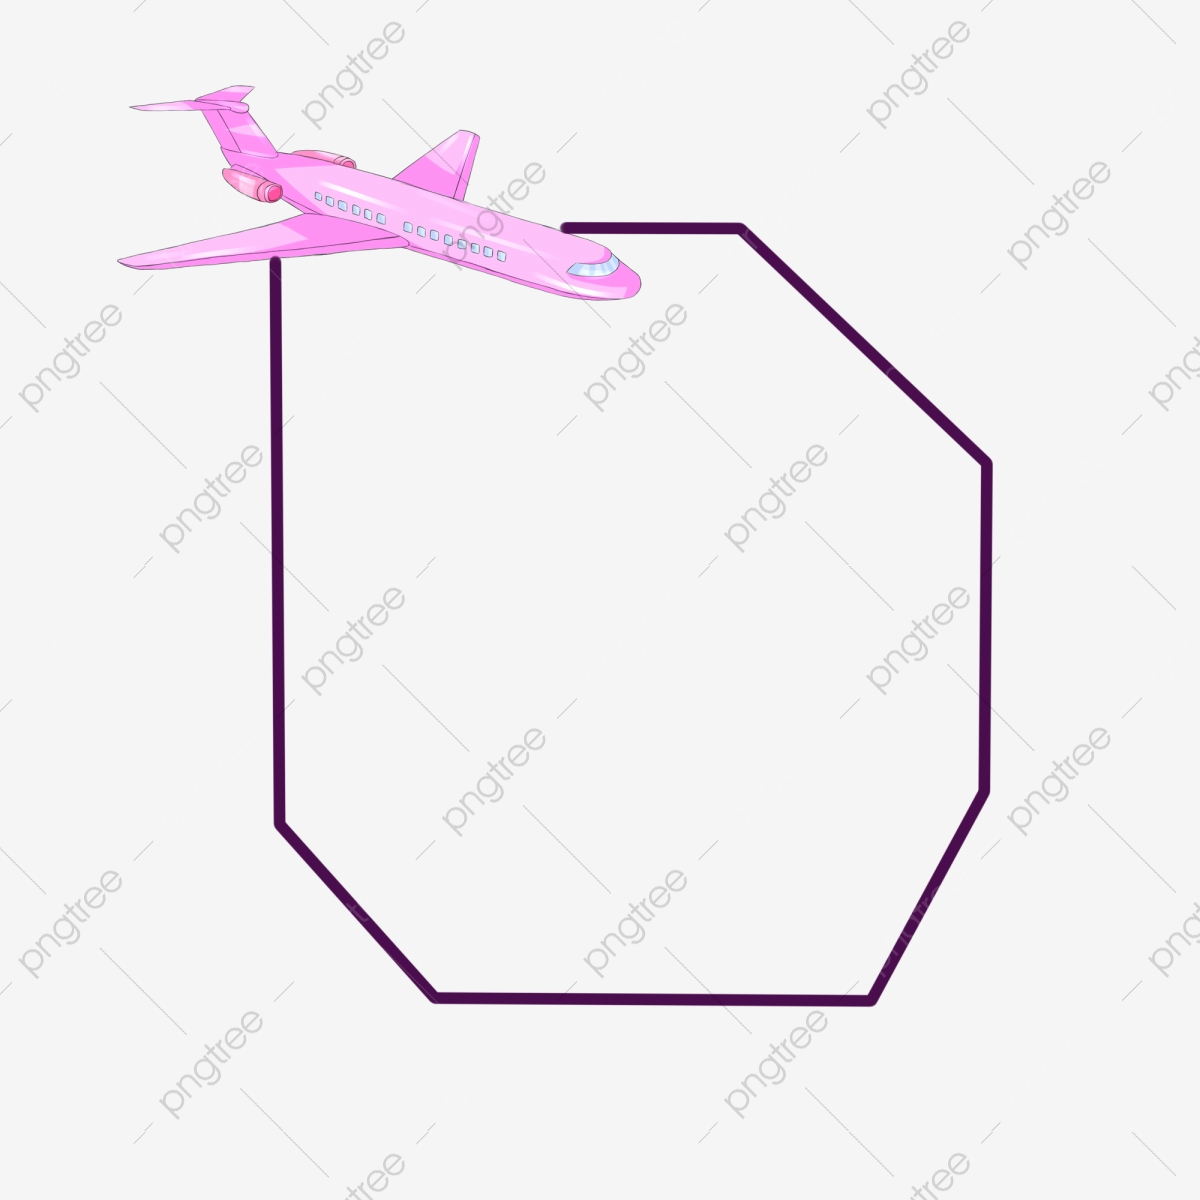 Free Paper Airplane Clipart, Download Free Clip Art, Free Clip Art on  Clipart Library